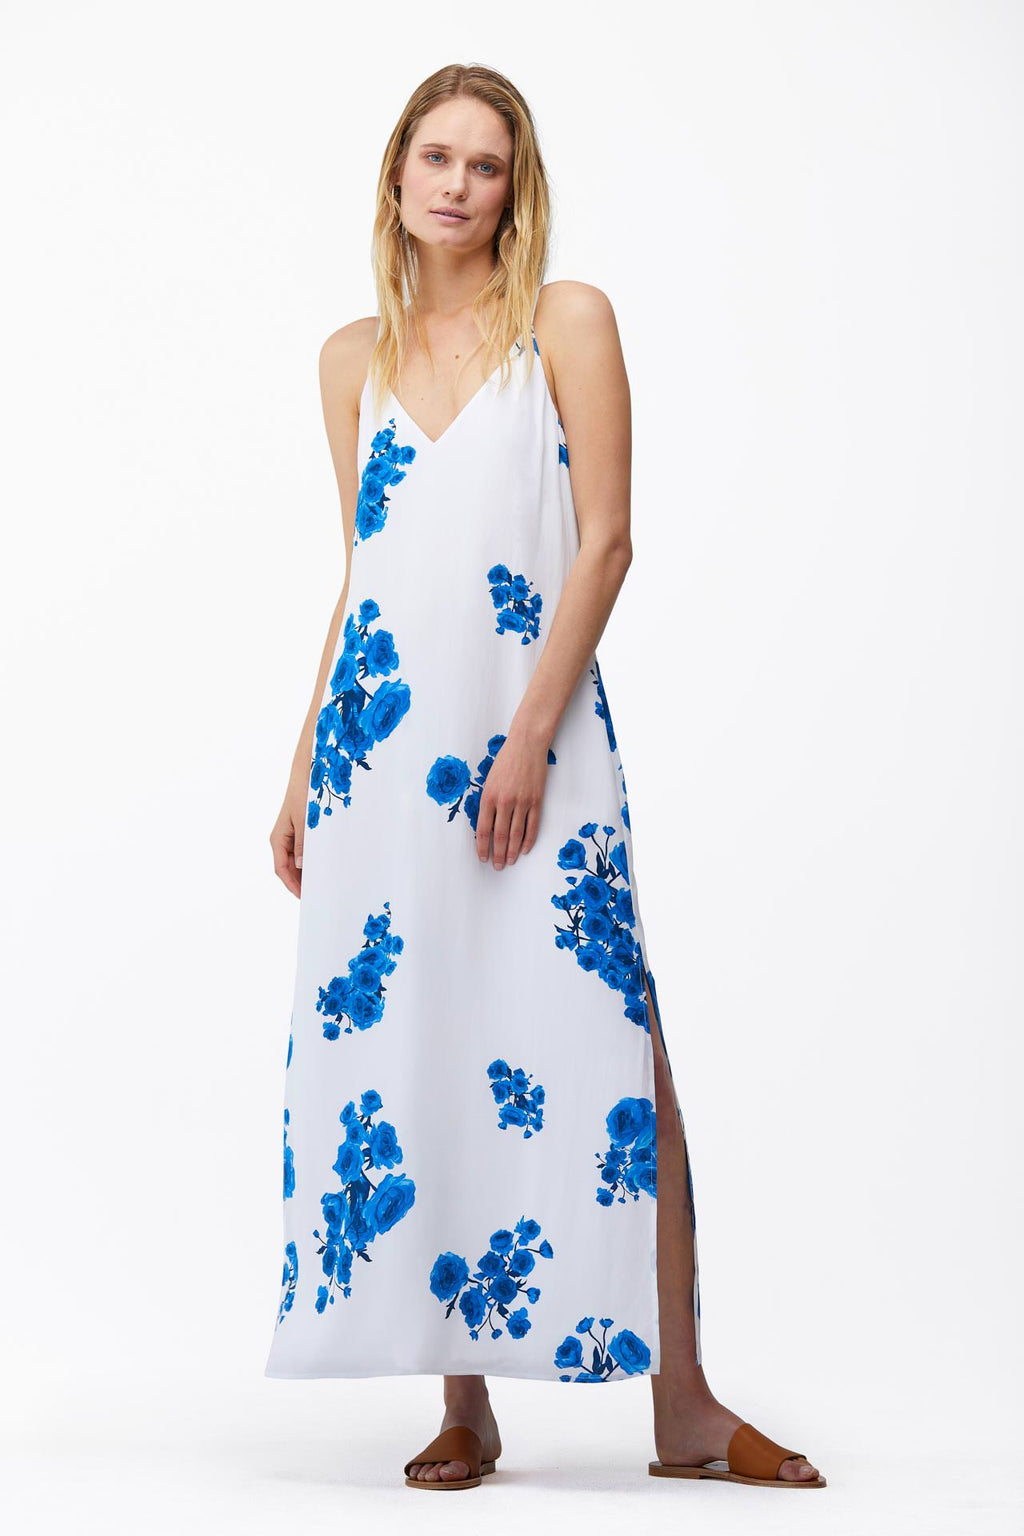 The Frida Dress in Blue Floral